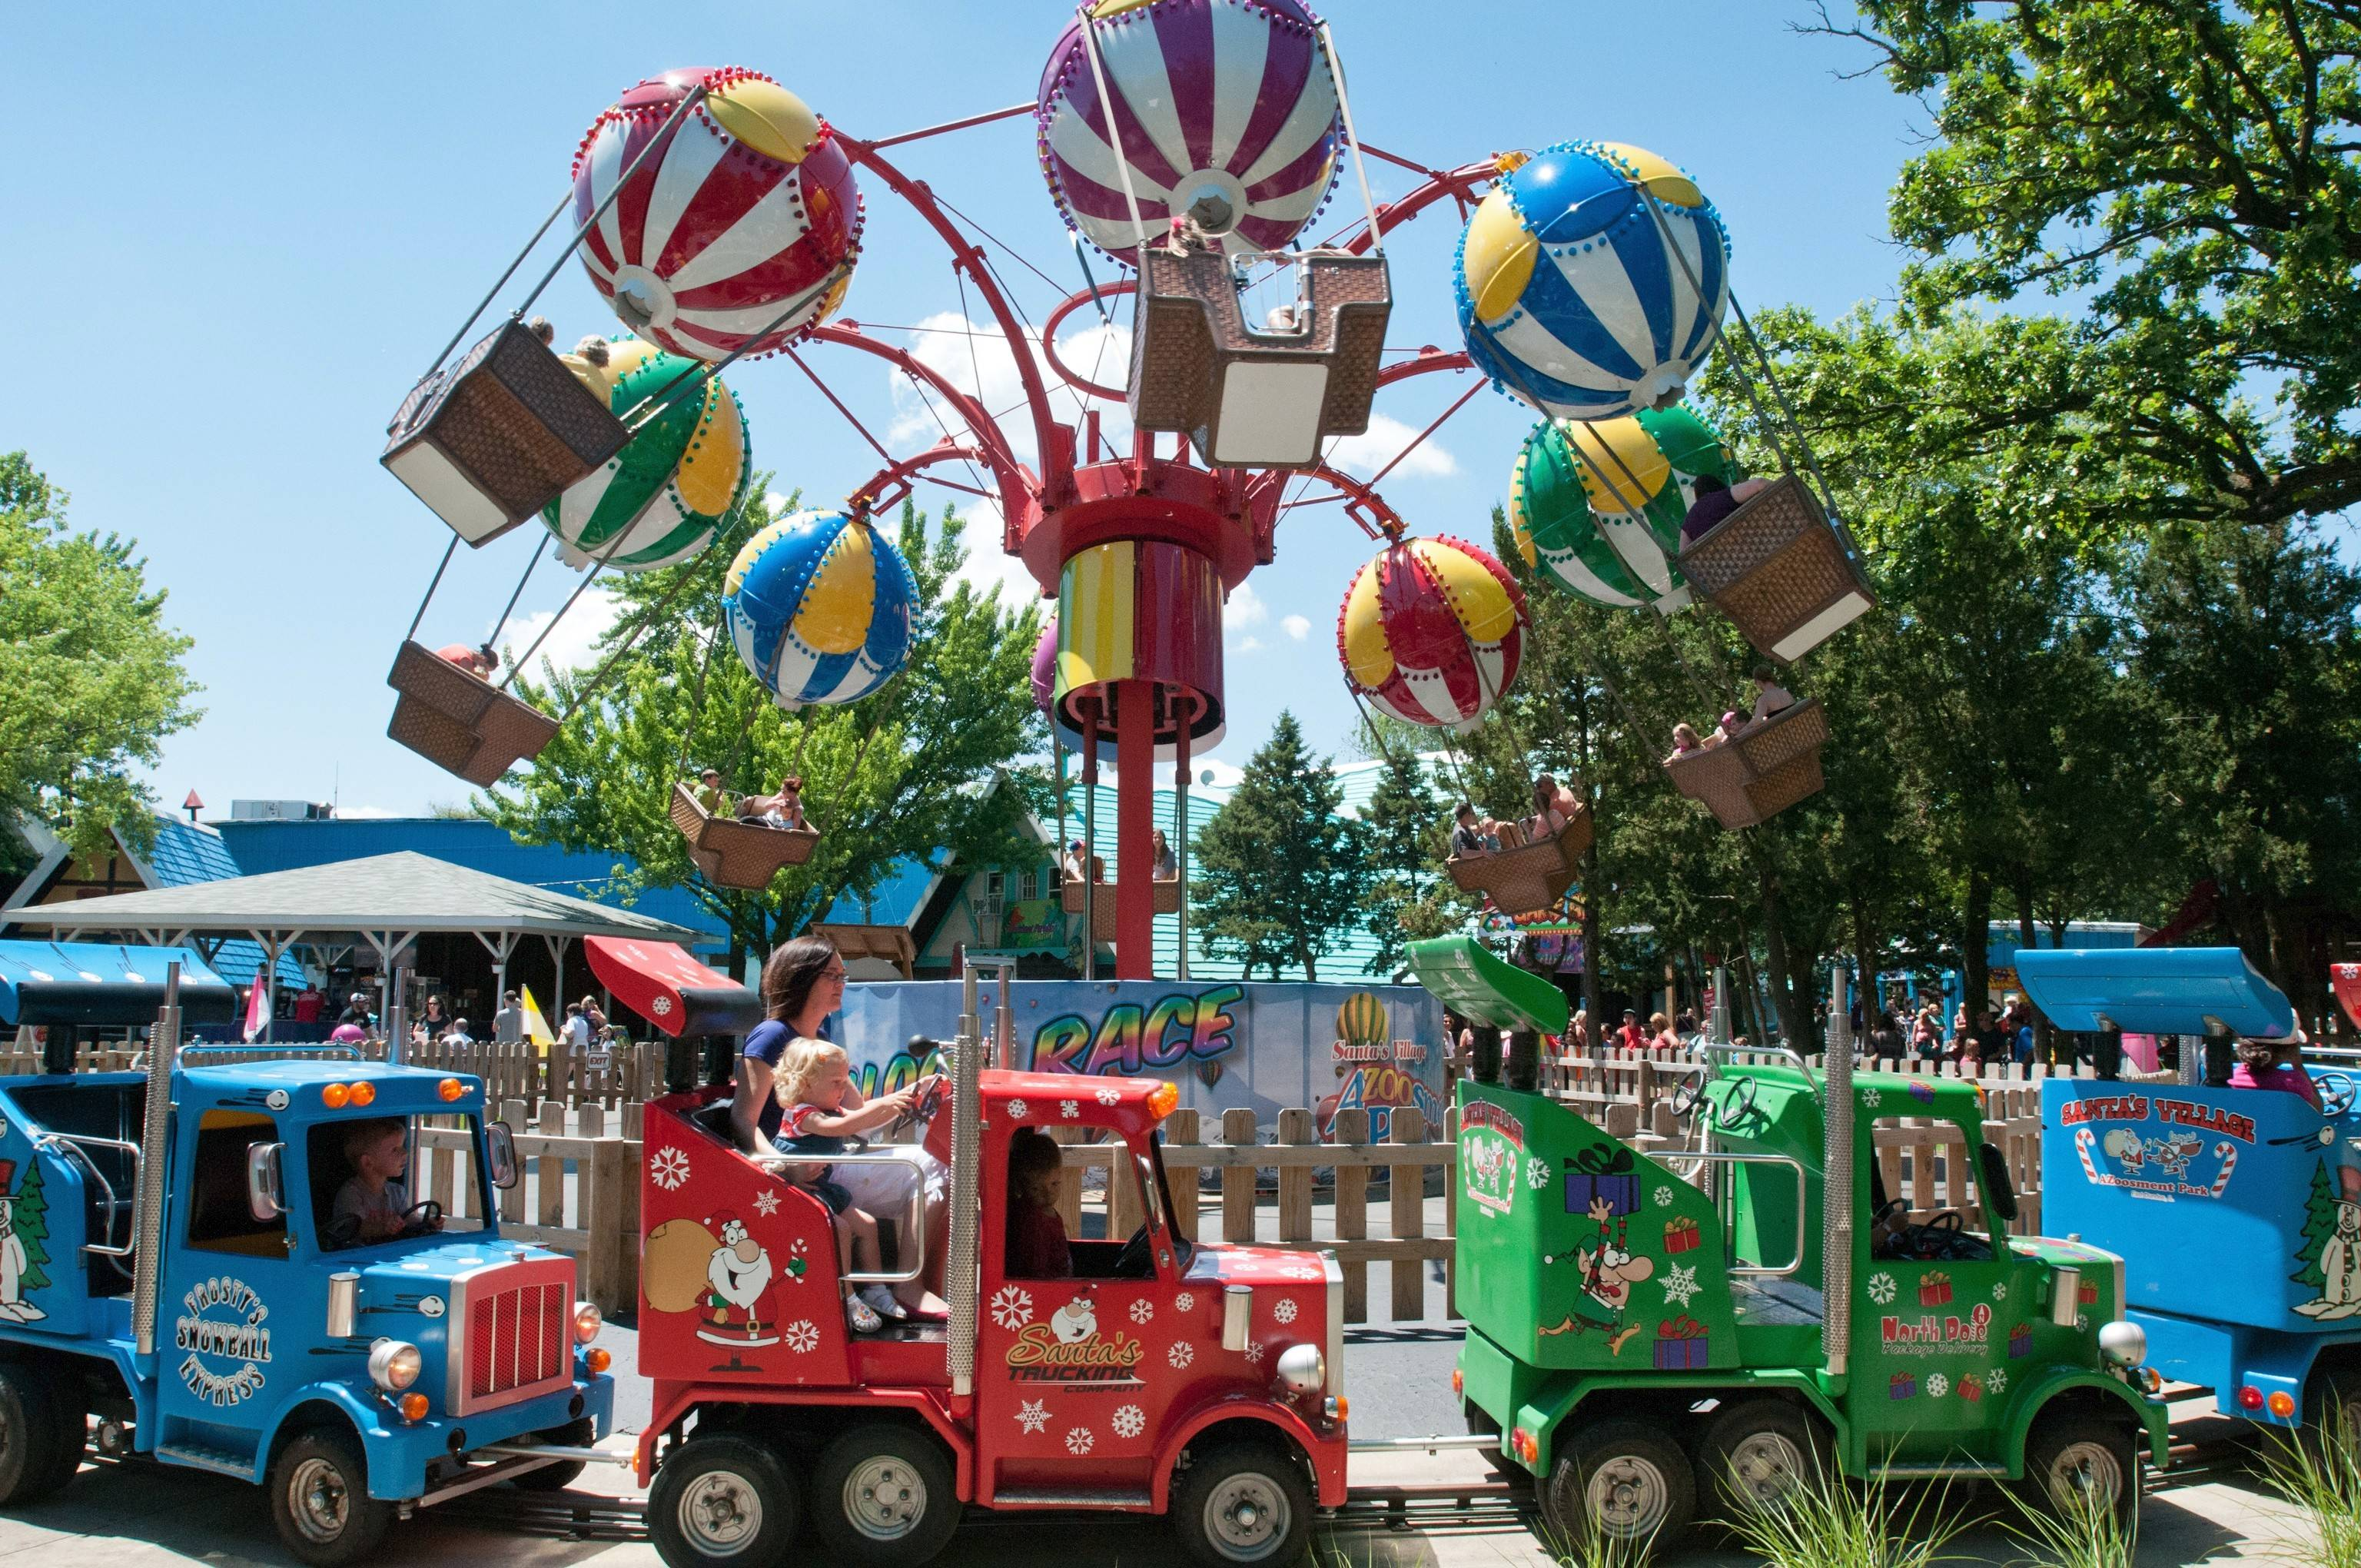 Santa's Village Azoosment Park in East Dundee marks its 55th anniversary this summer.